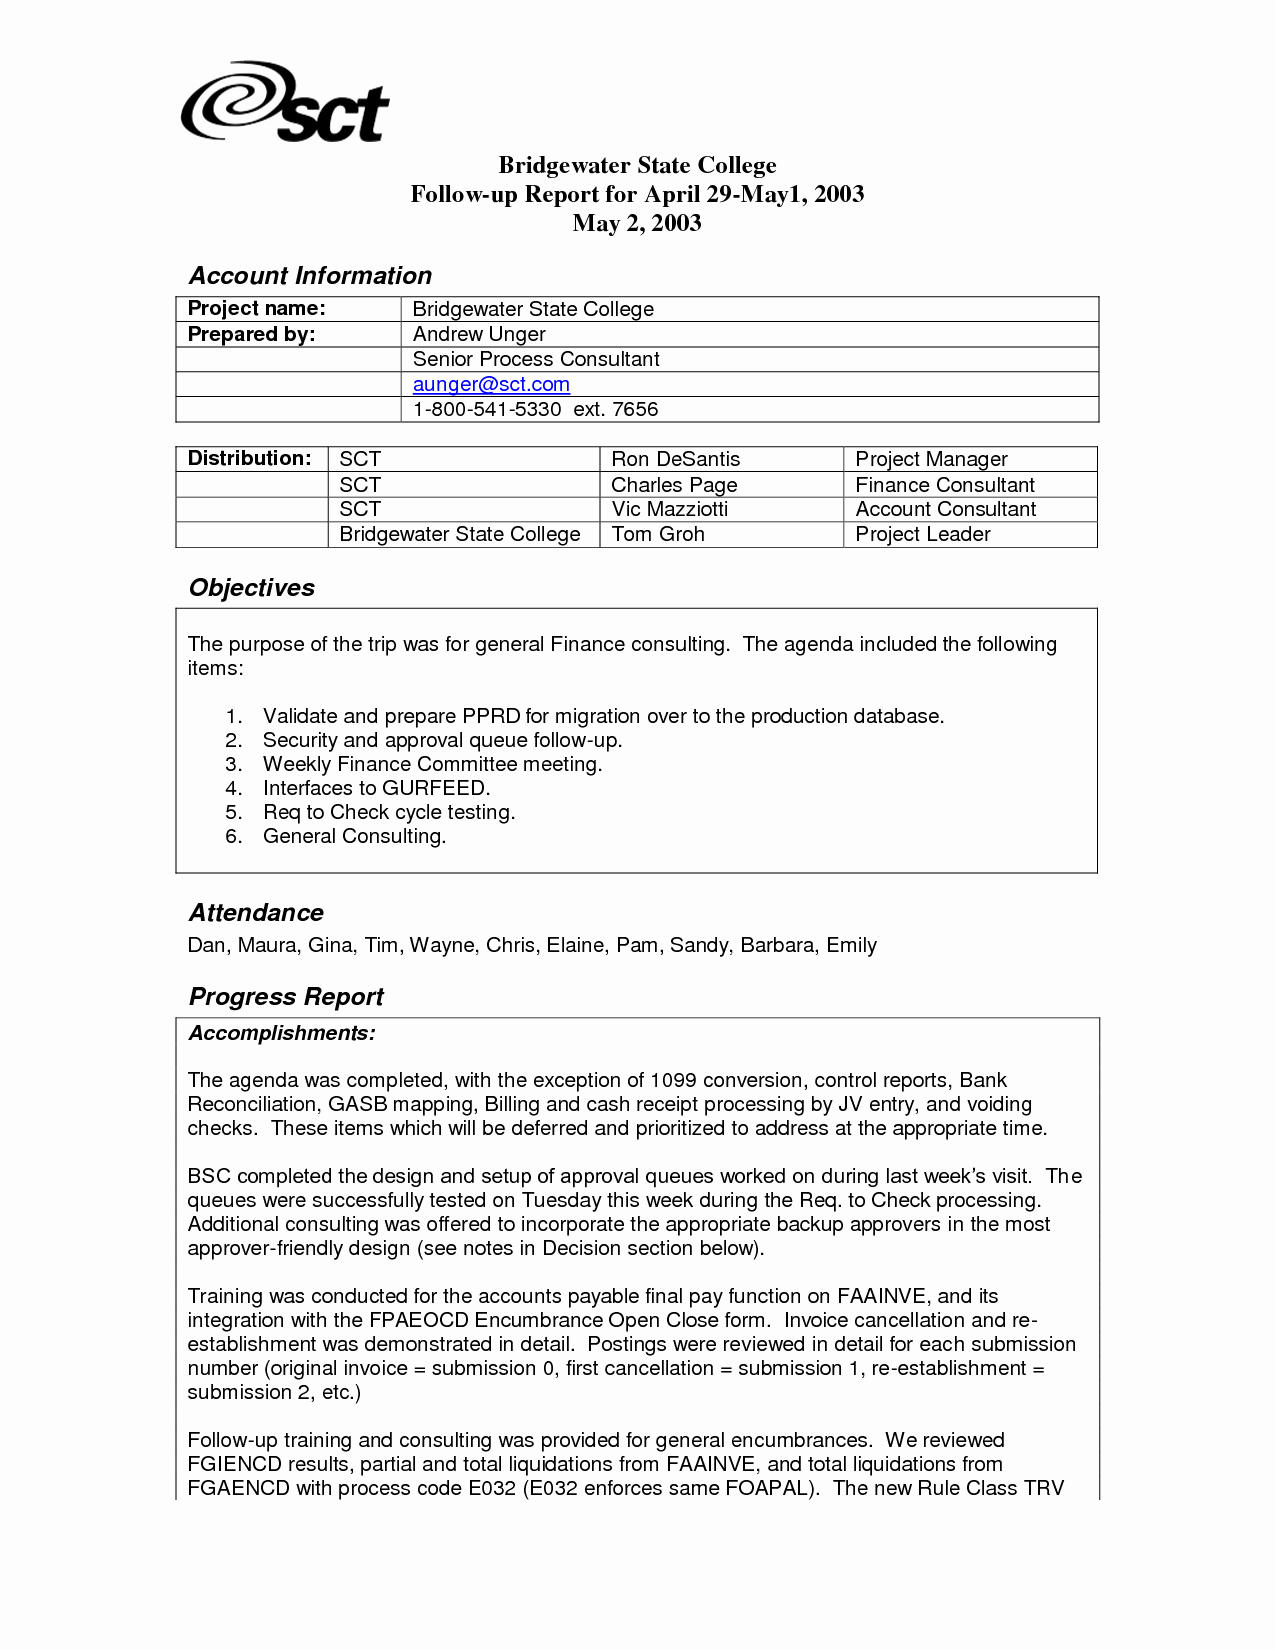 Business Trip Report Template Fresh 16 Business Travel Report Template Sample